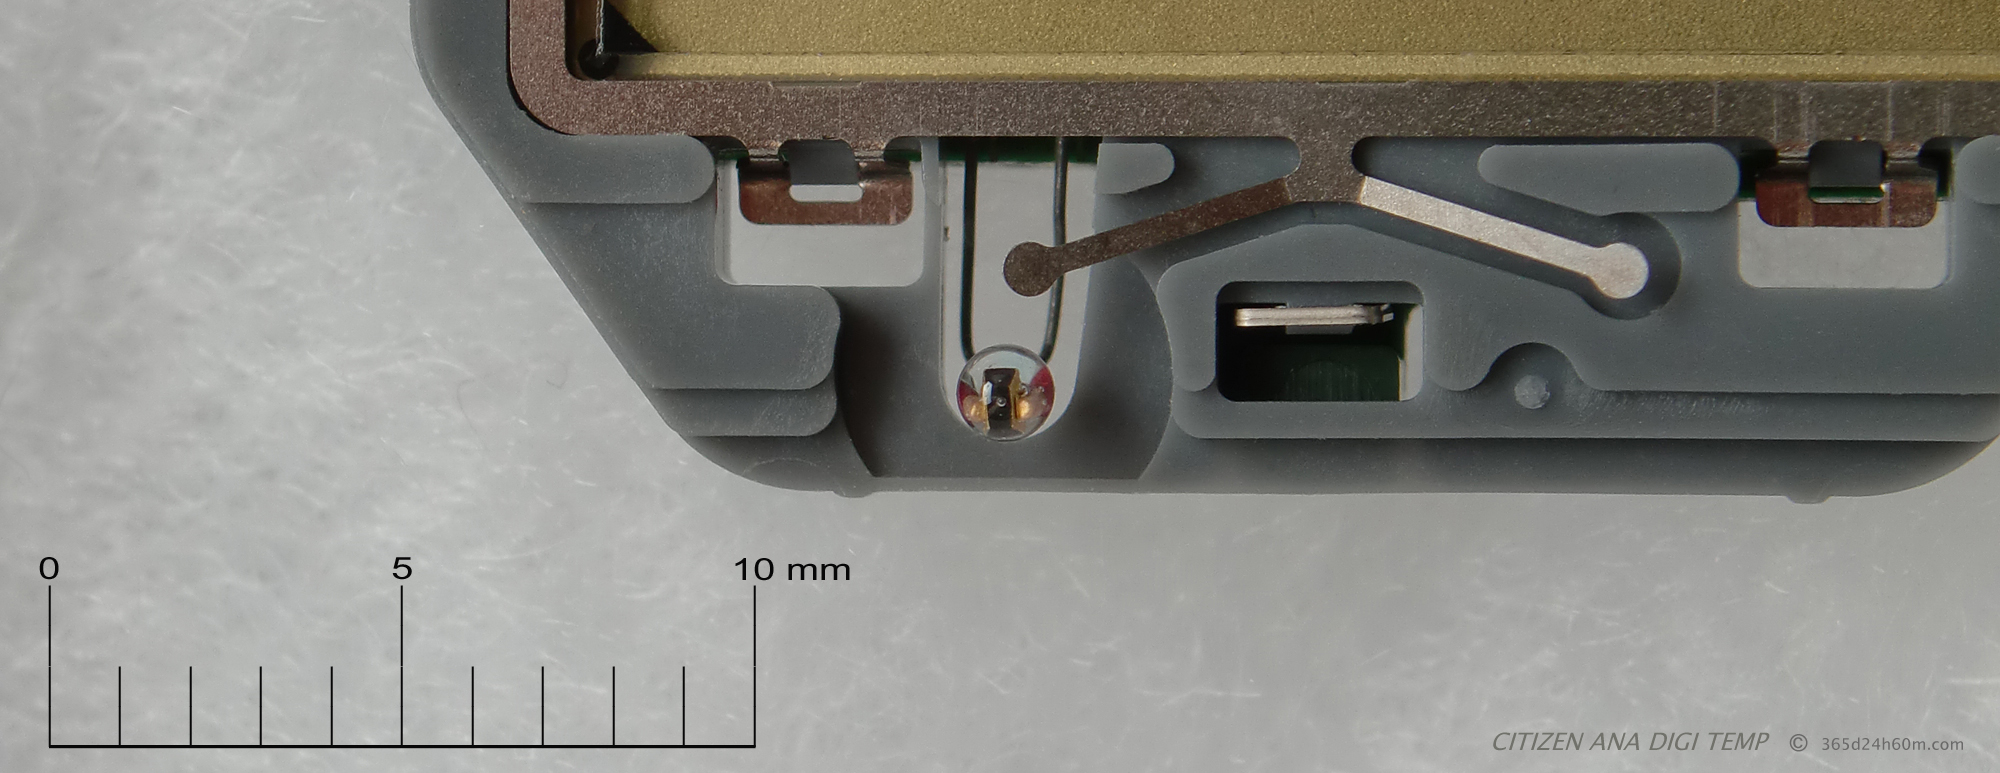 Click to enlarge...Temperature sensor - Thermistor. is really small - just over 1 mm in diameter. Also visible an active element - changing the resistance depending on the temperature, and two gold plated connections. The whole is immersed in a drop of glass !